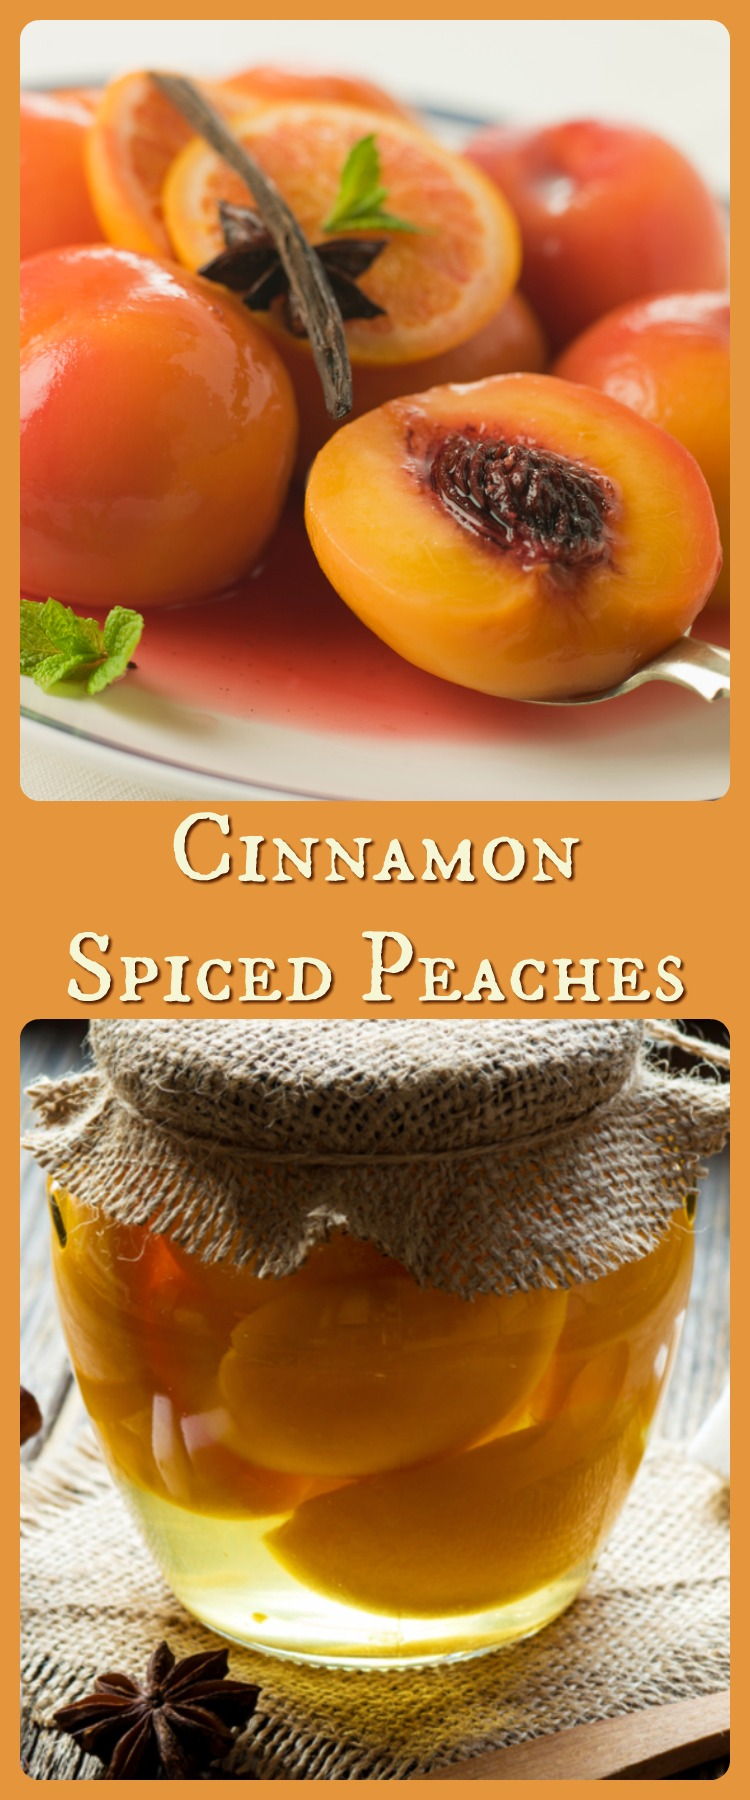 Serve old fashioned, homestyle cinnamon spiced peaches with all your celebration meals.